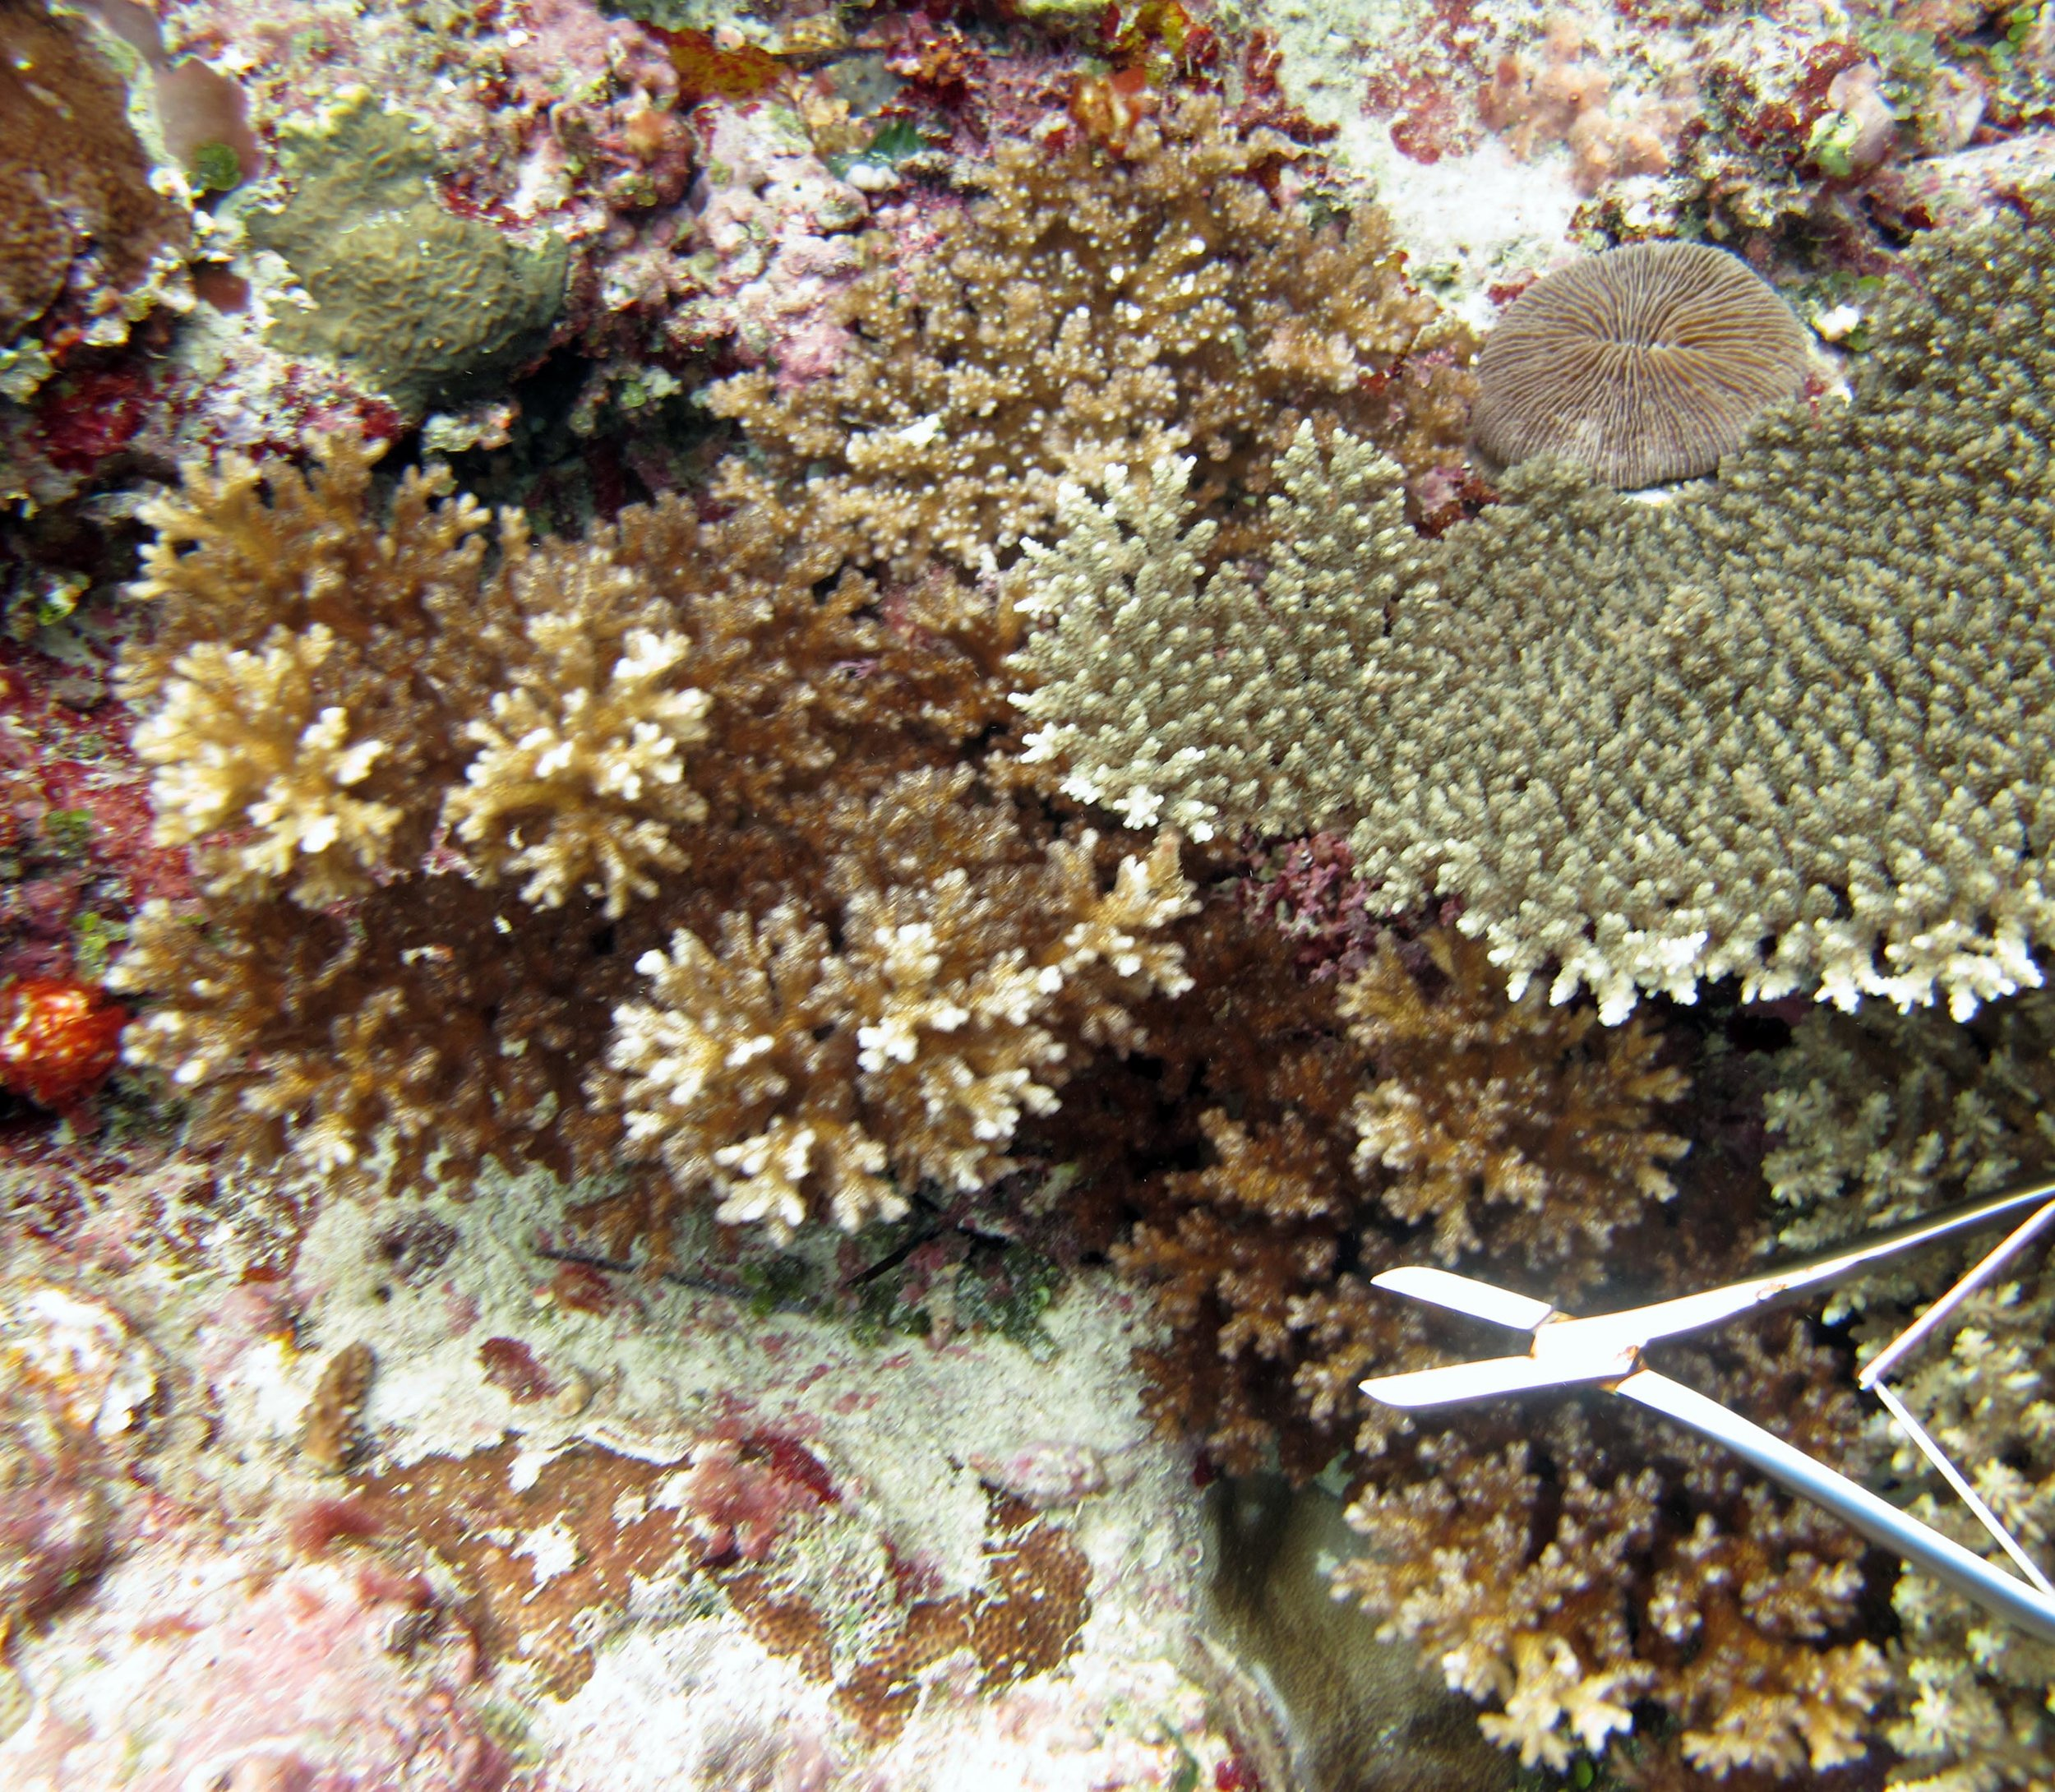 colony 102 (  Pocillopora verrucosa  )-colony goes beyond border of image. Sample was only partially analyzed and so was not included in multivariate statistical analyses:  JMP   Excel   Ancillary data